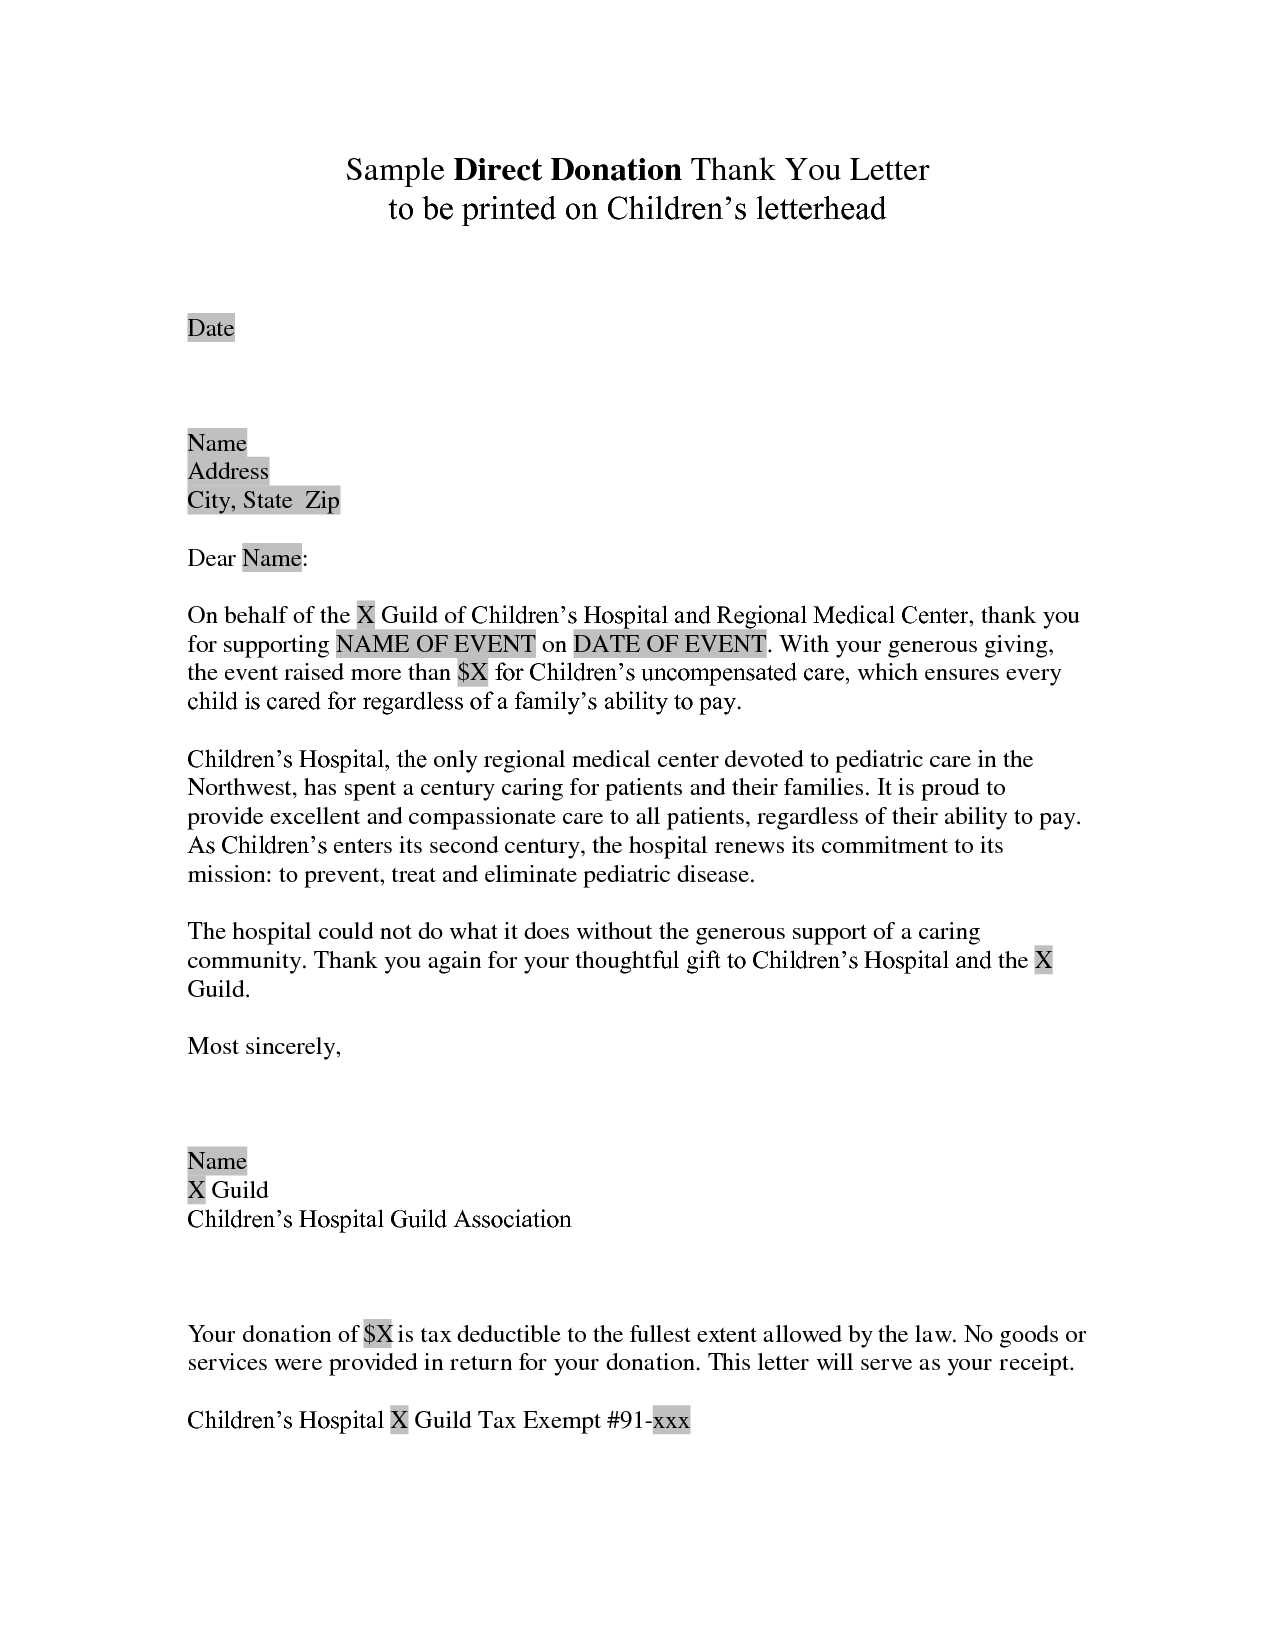 Charitable Donation Letter Template - Church Donation form Template Also Donor Thank You Letter Sample